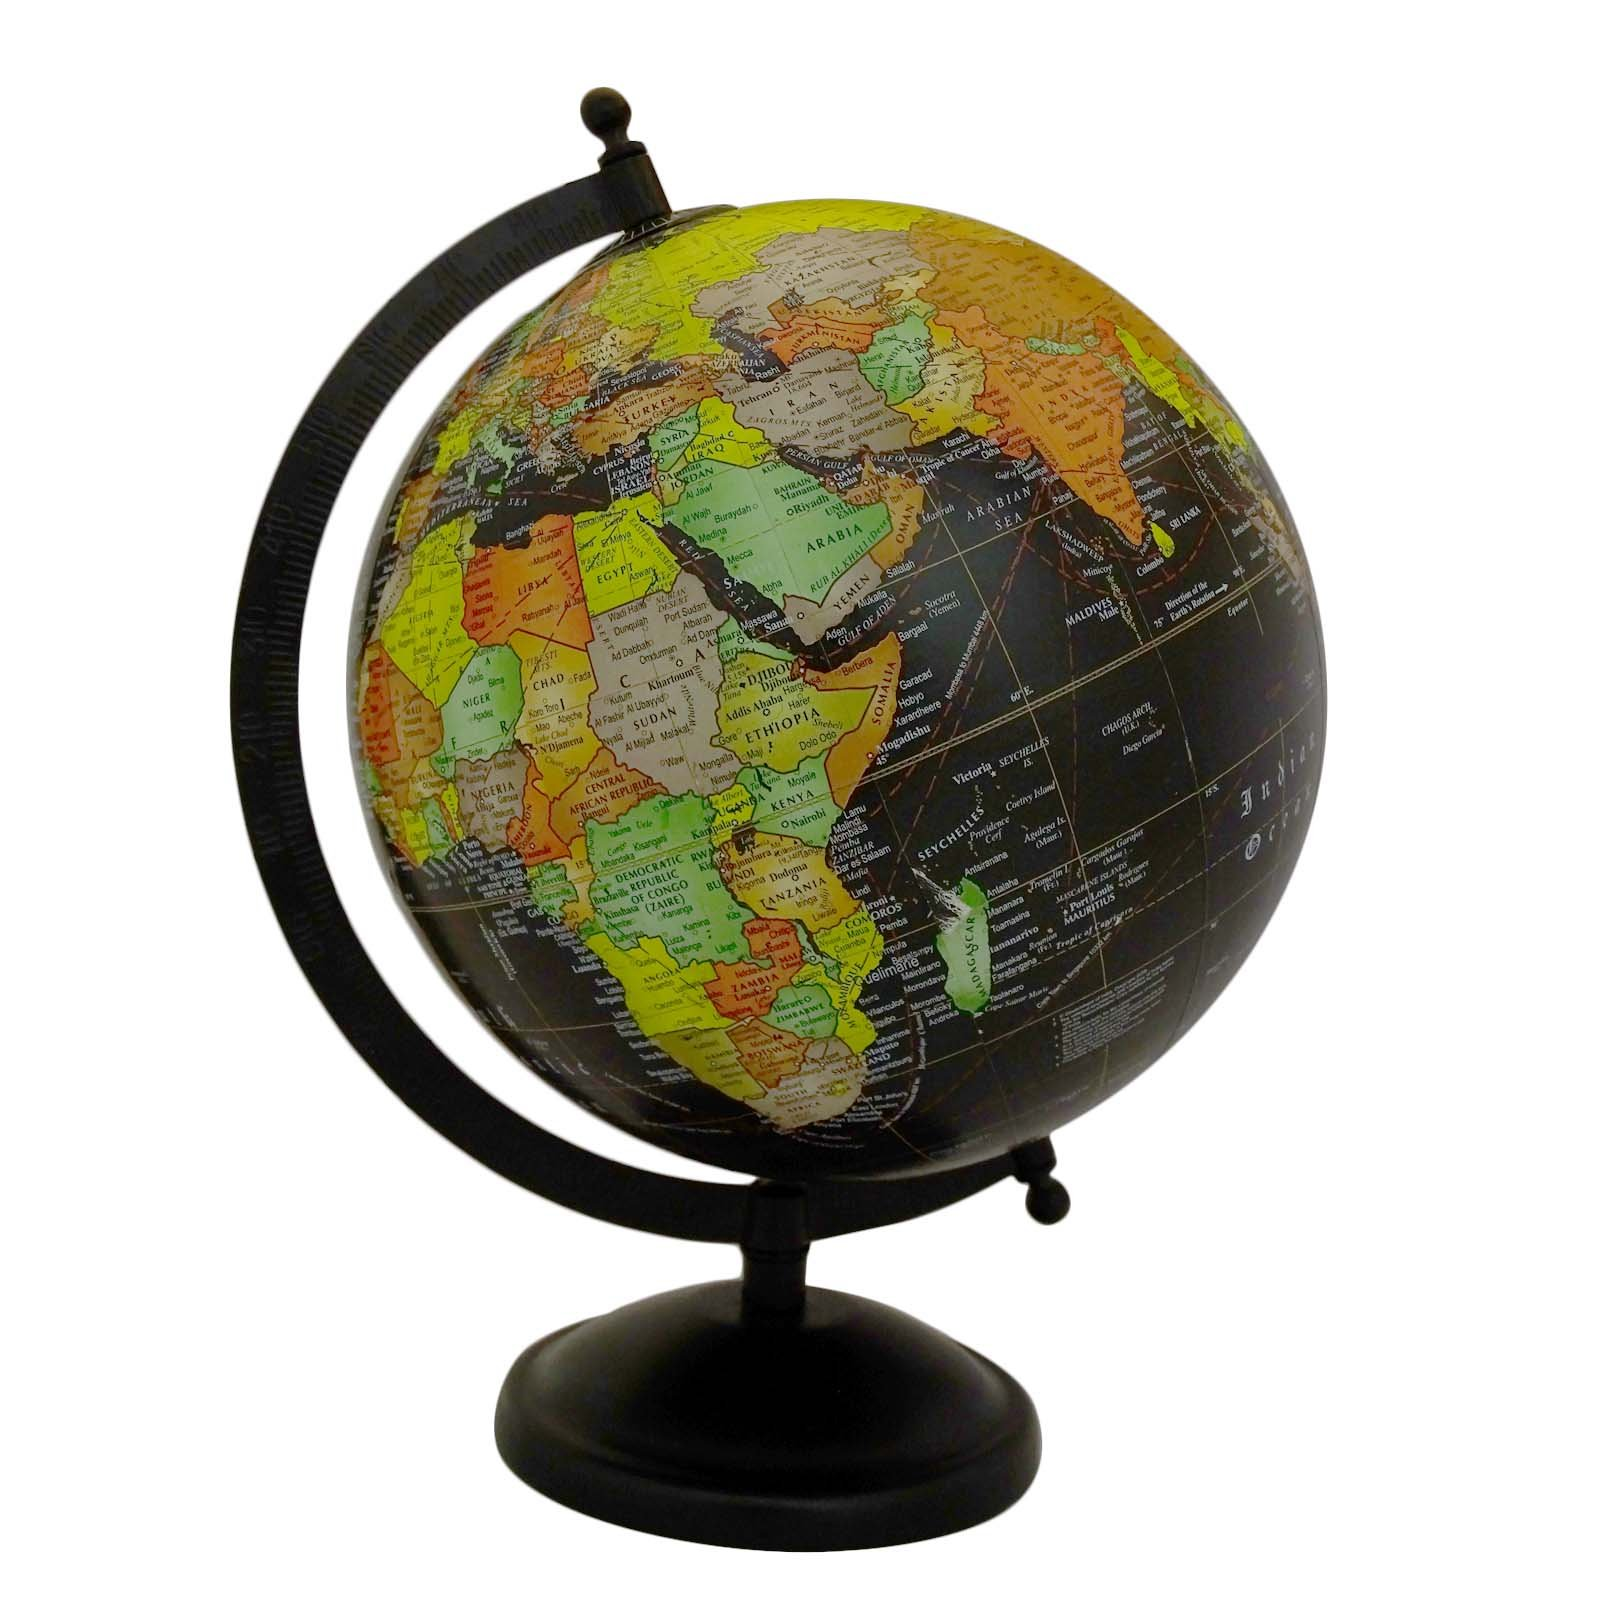 Desktop Rotating Globe Table Décor World Earth Black Ocean Geography 11.2'' by Uniworld (Image #1)